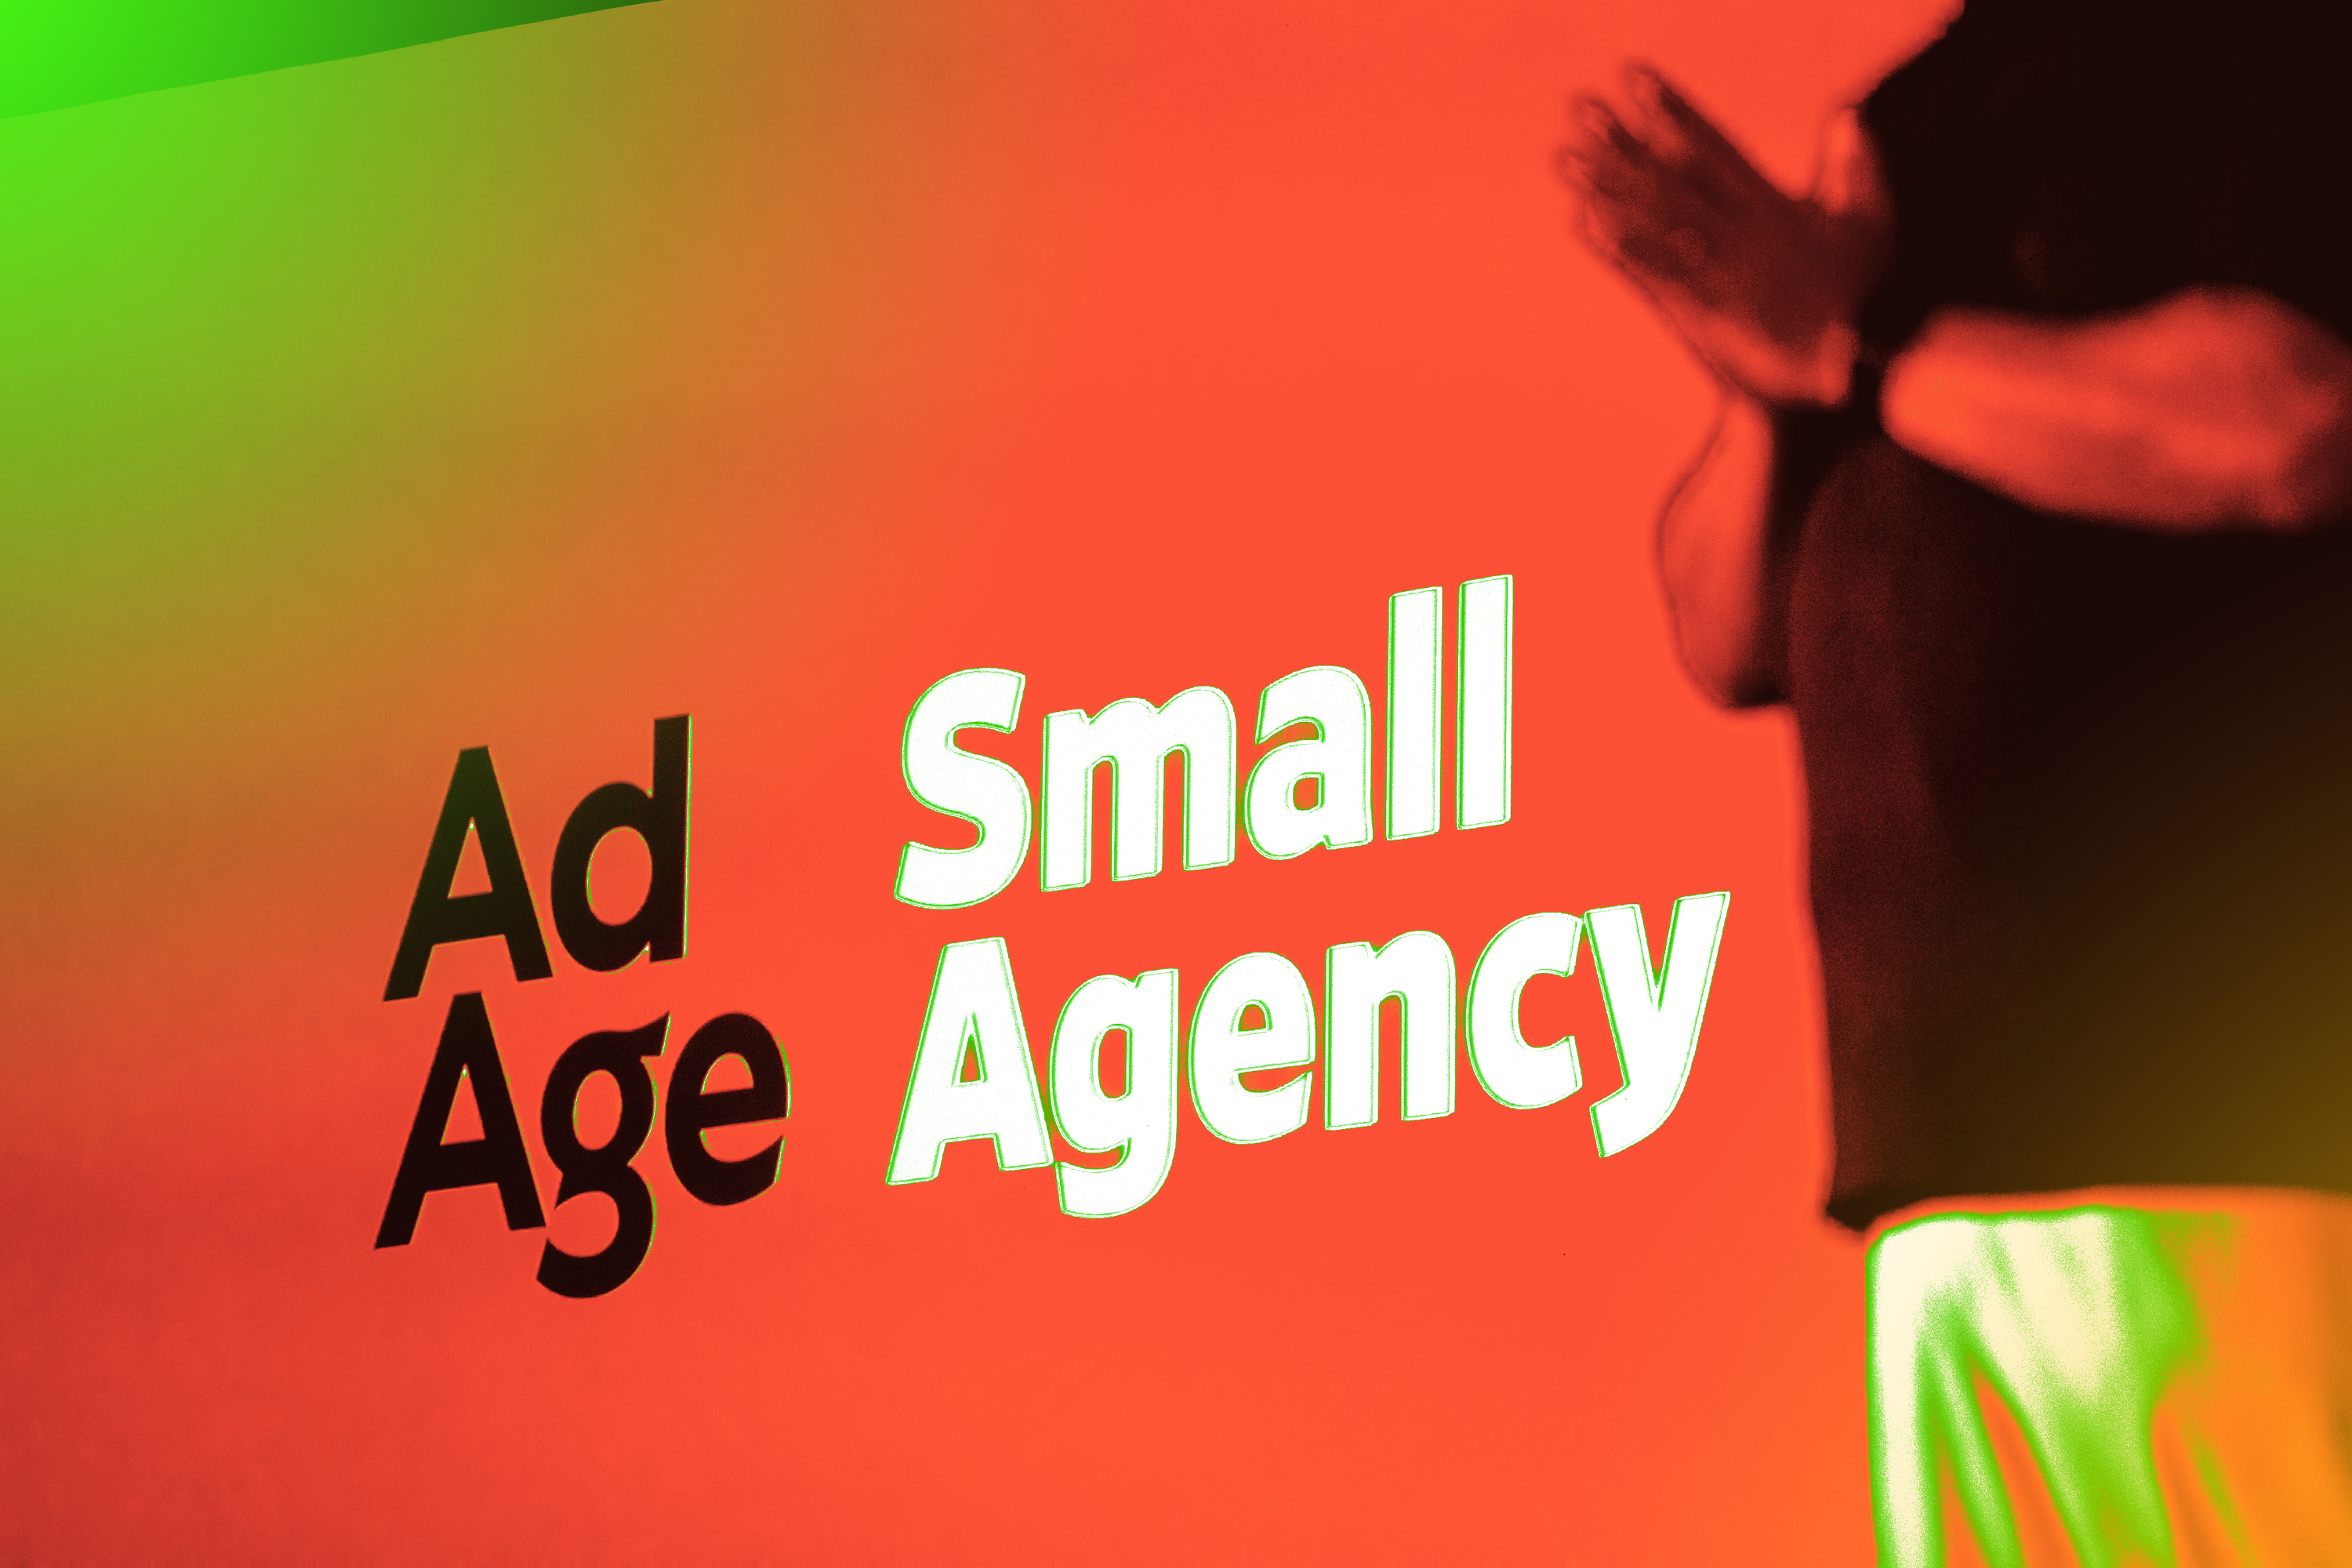 Key crucial critical takeaways list Ad Age 2020 Small Agency Conference Awards Greg Hahn BLM Black Lives Matter Confederate flag social change coronavirus COVID 19 diversity working remotely